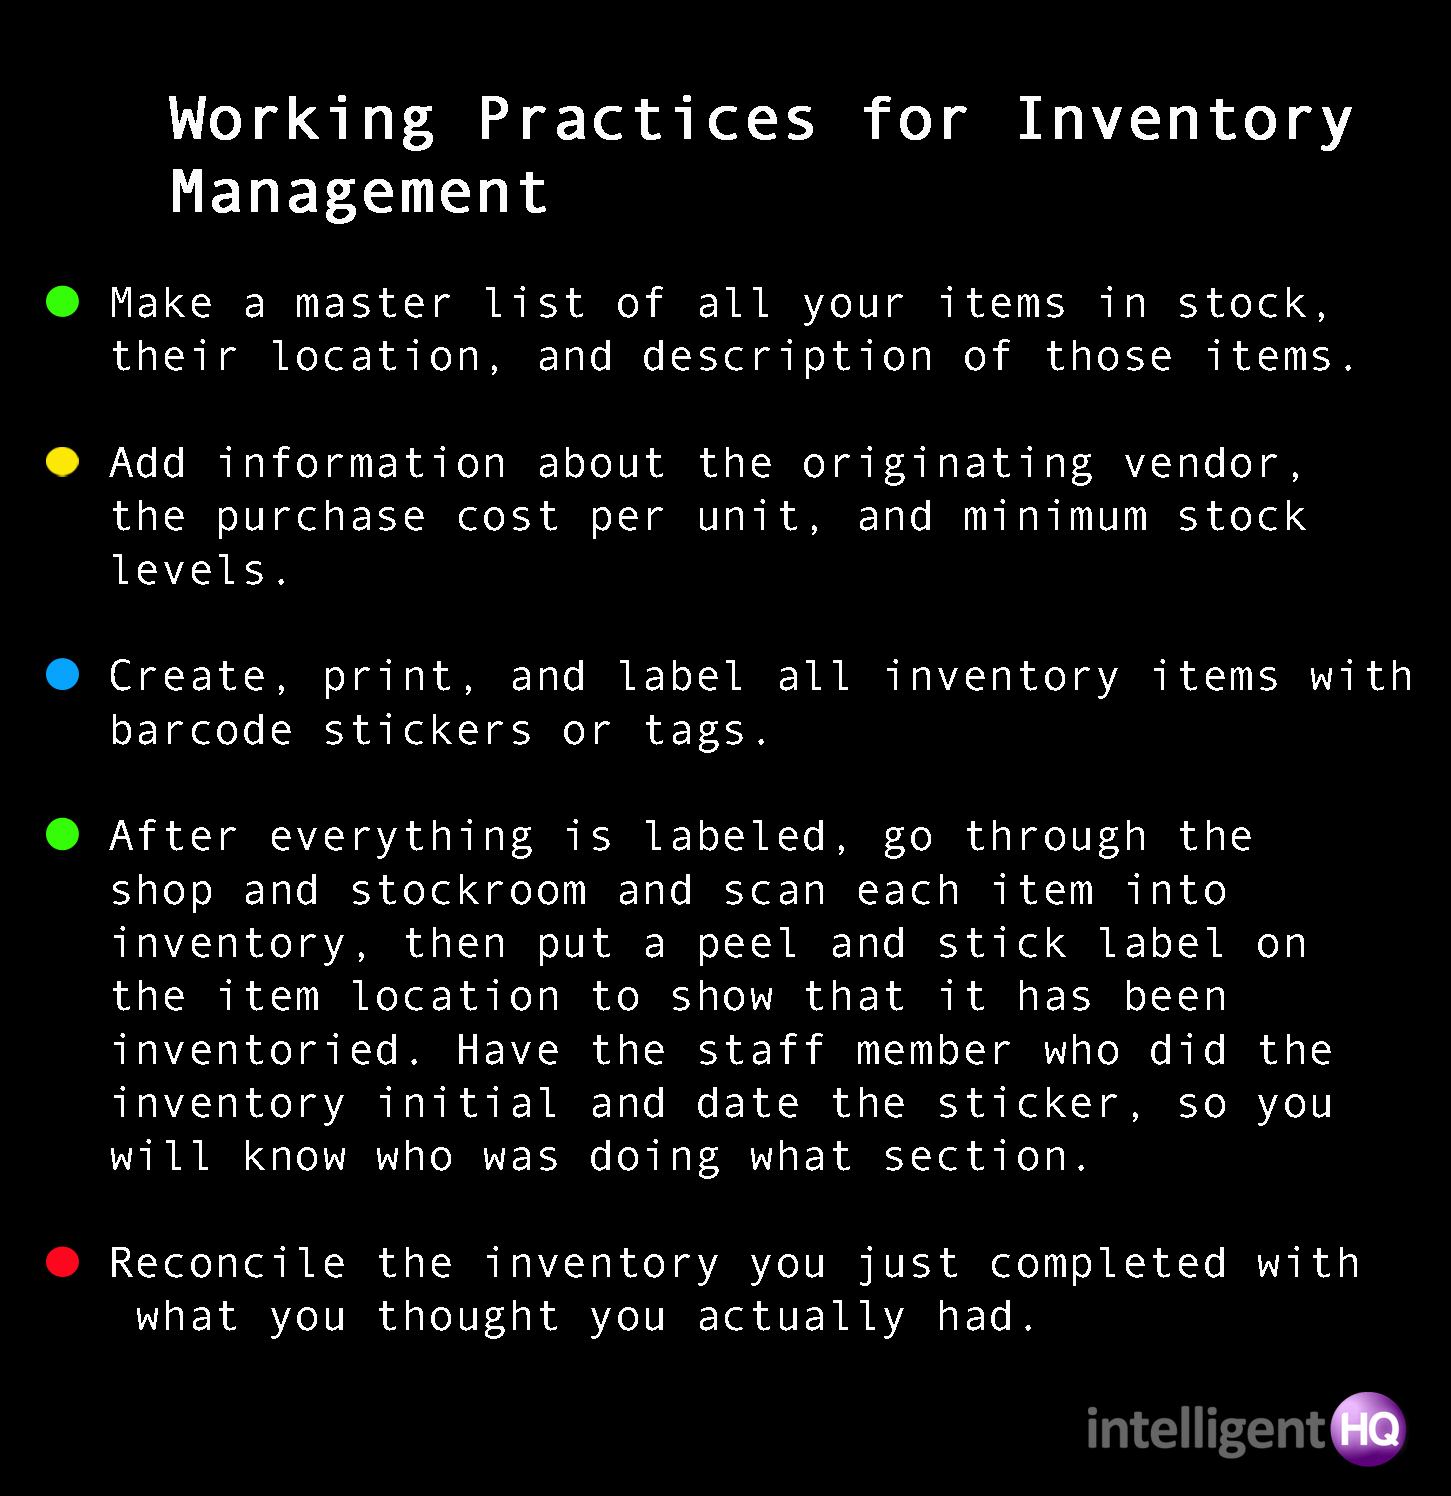 Working Practices for Inventory Management - IntelligentHQ